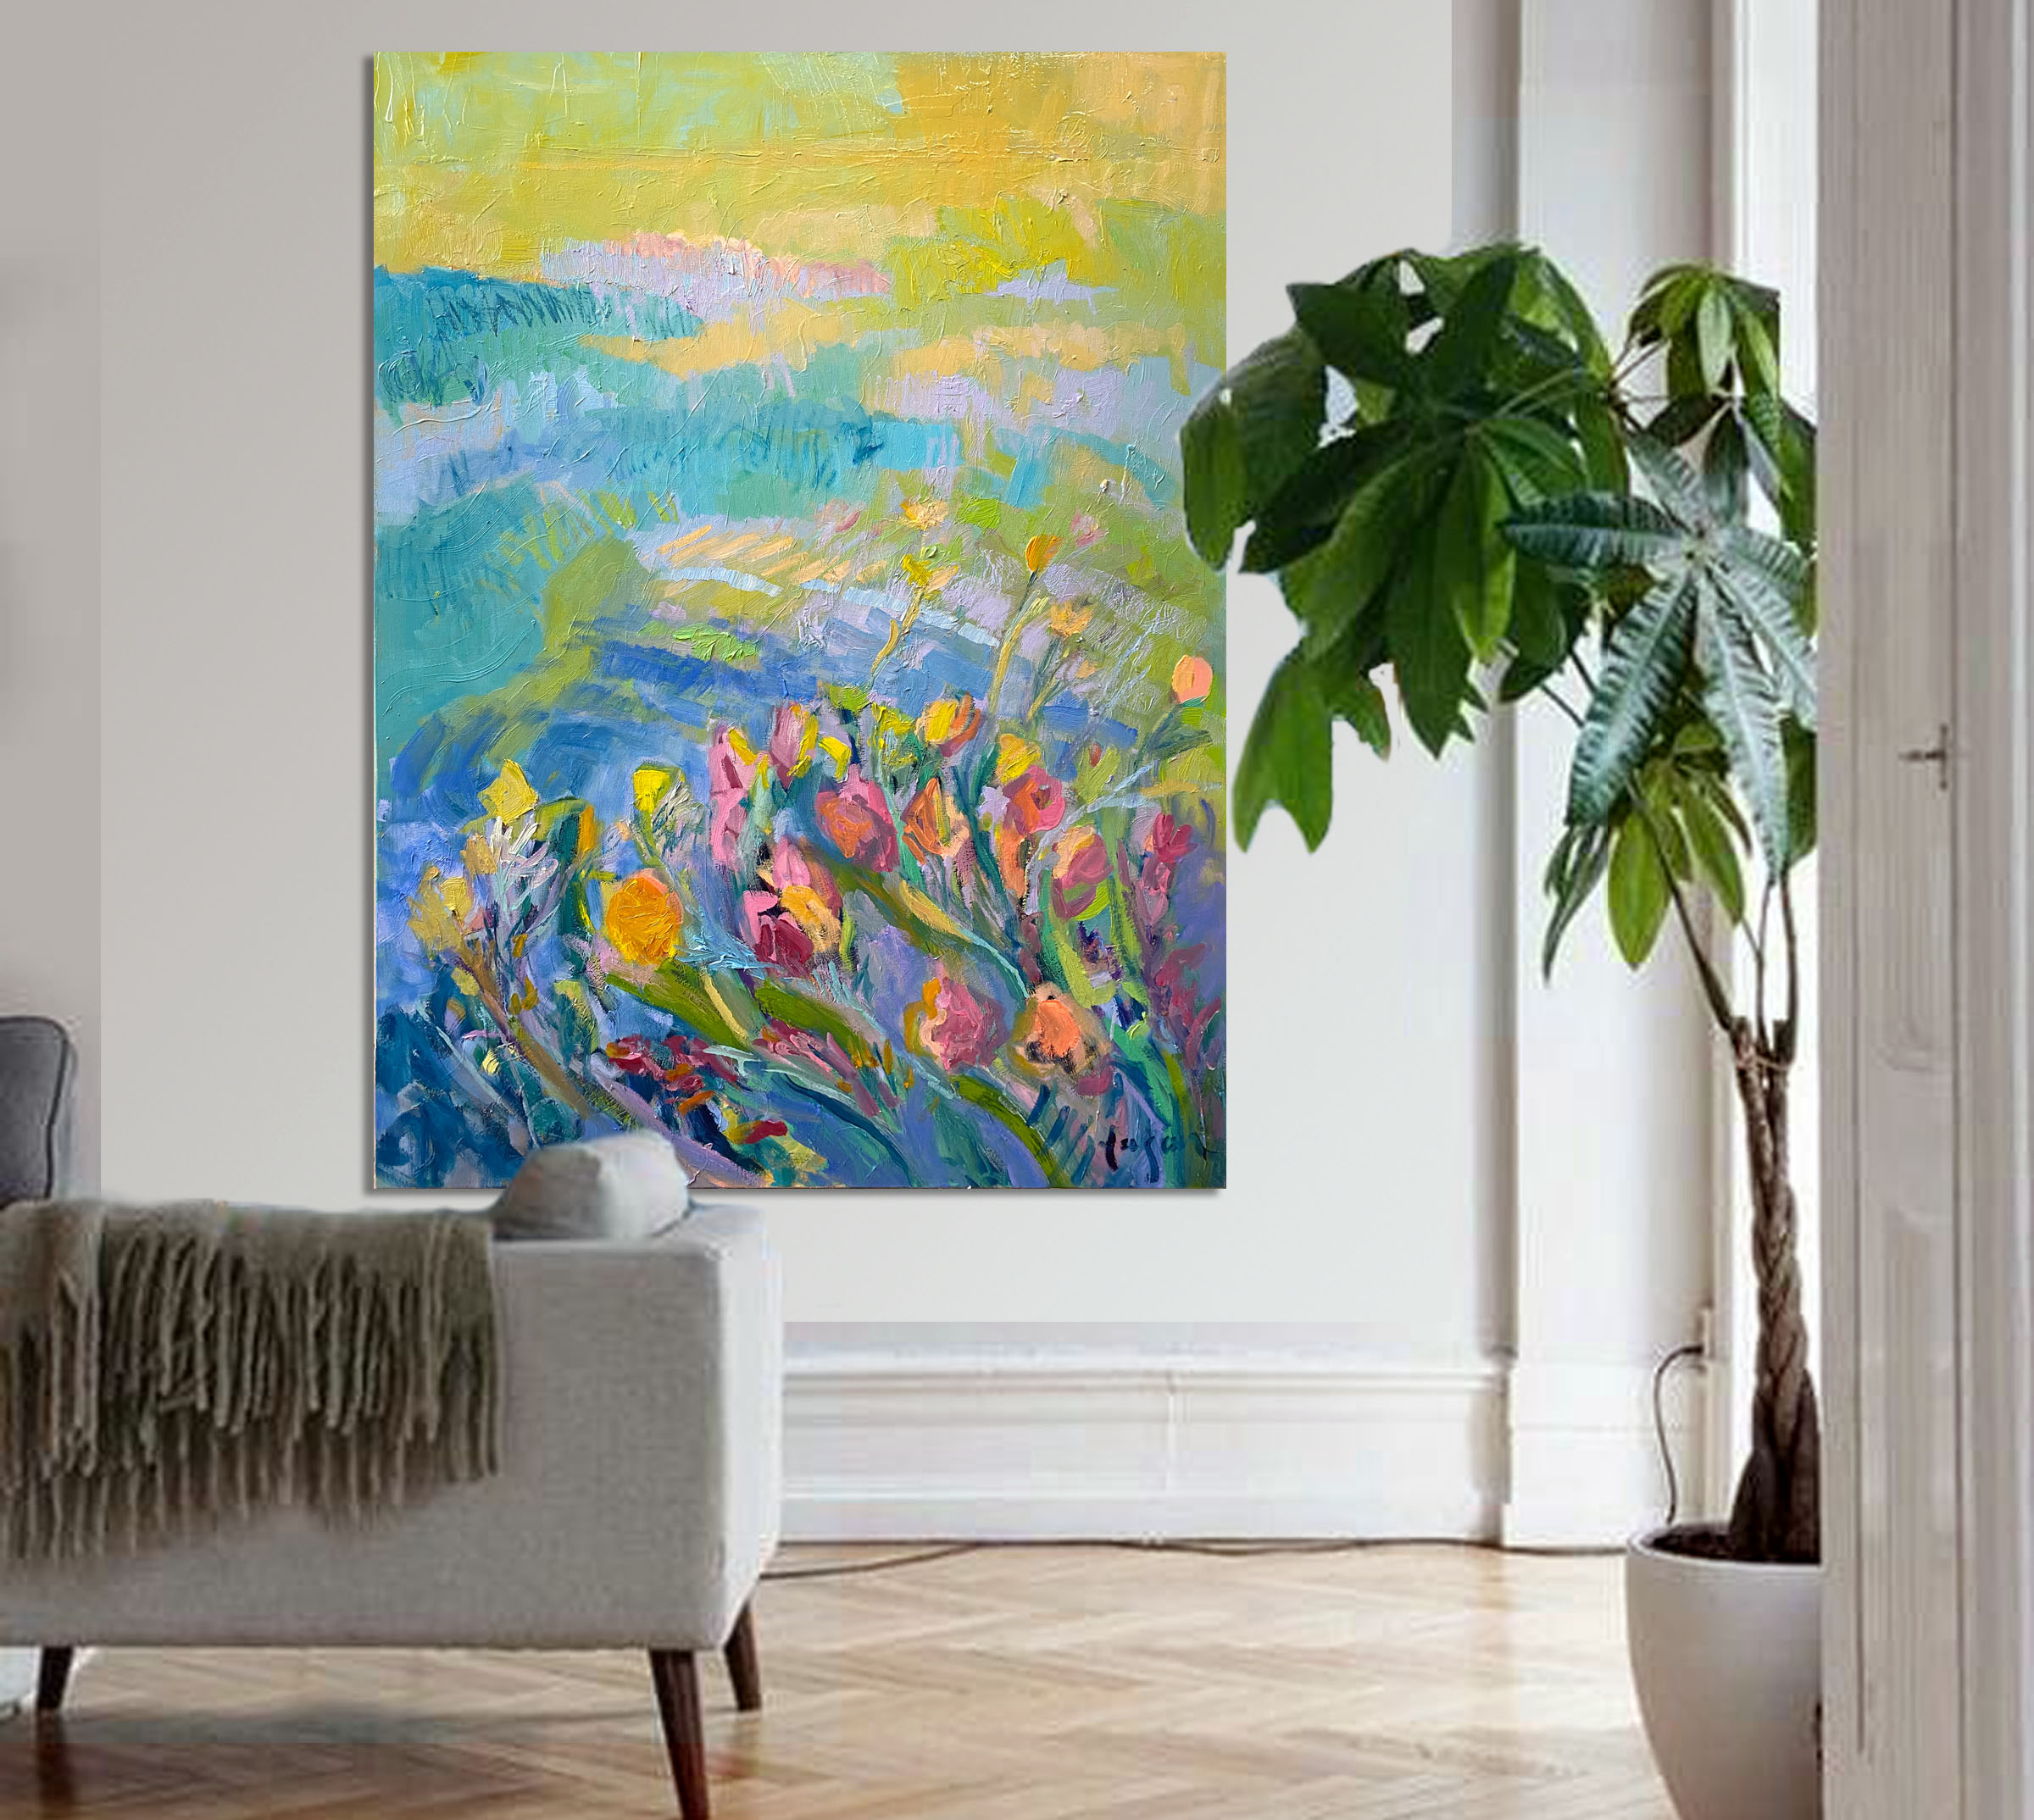 Oil Paintings Heal with Color in a Spa Resort Hotel. Multi-Canvas Abstract Floral Landscapes